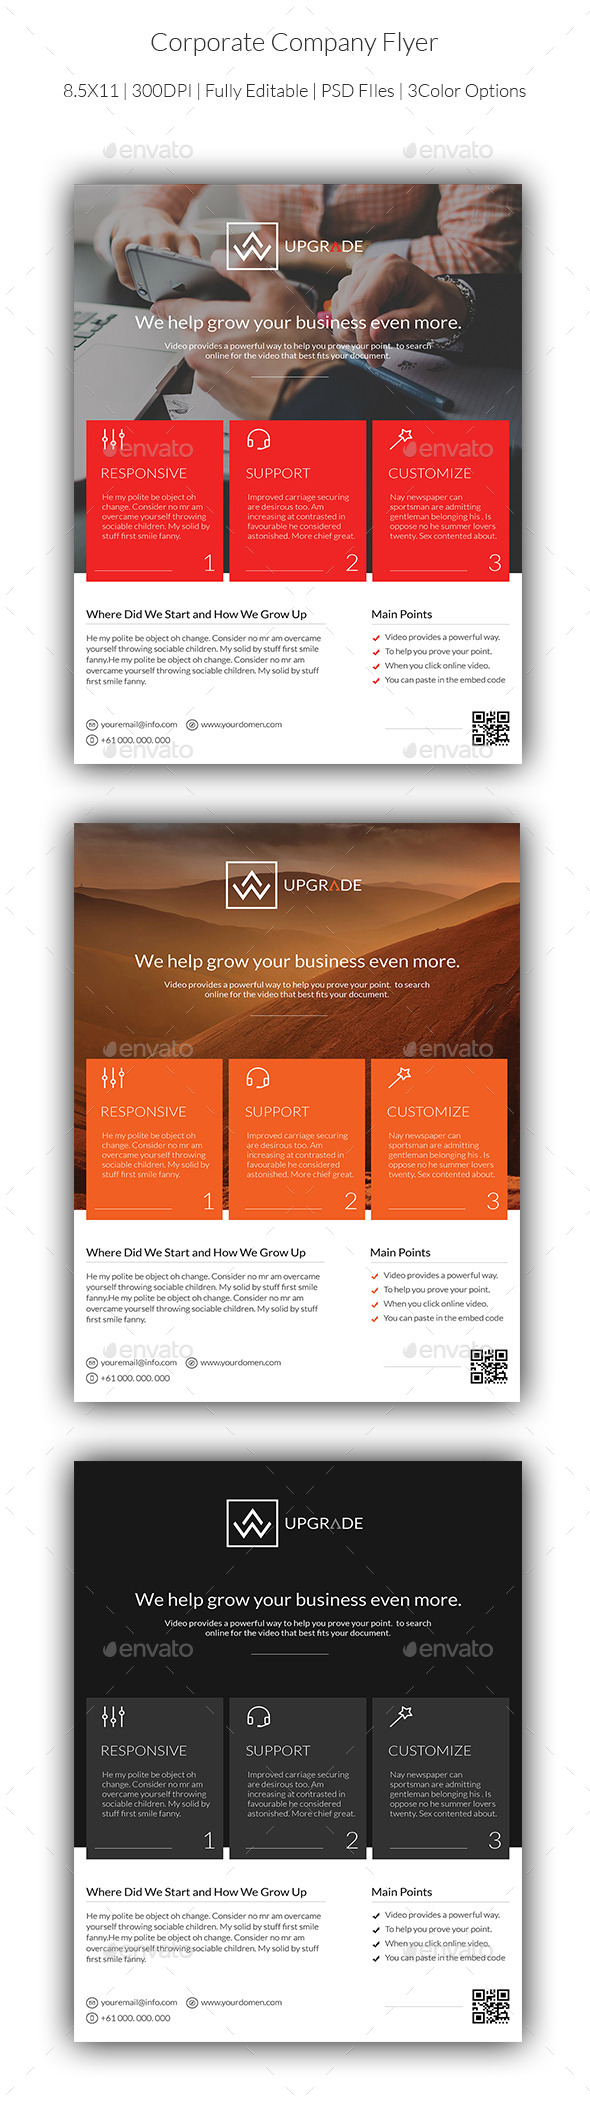 Corporate Company Flyer - Corporate Flyers